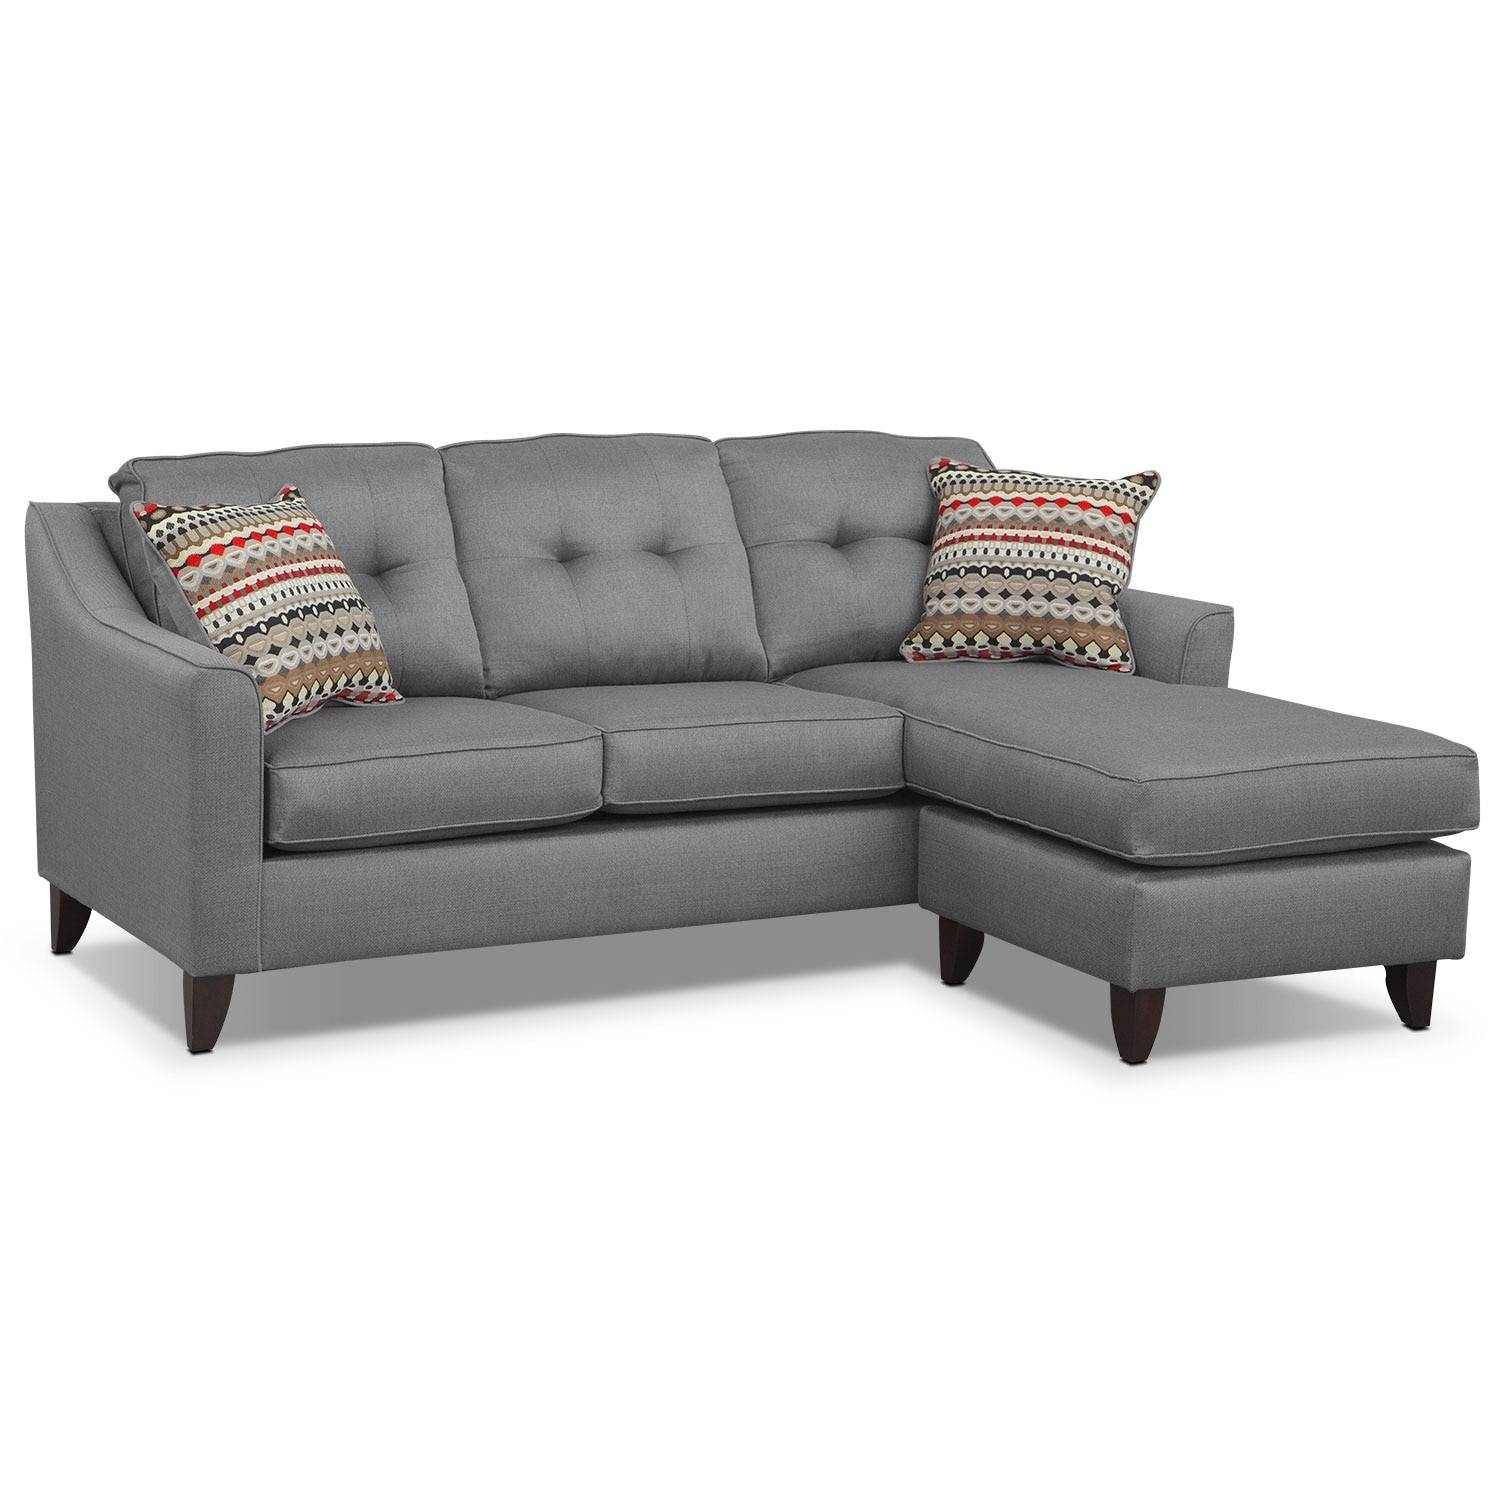 Marco Chaise Sofa And Chair Set - Gray | American Signature Furniture within Sofa And Chair Set (Image 20 of 30)